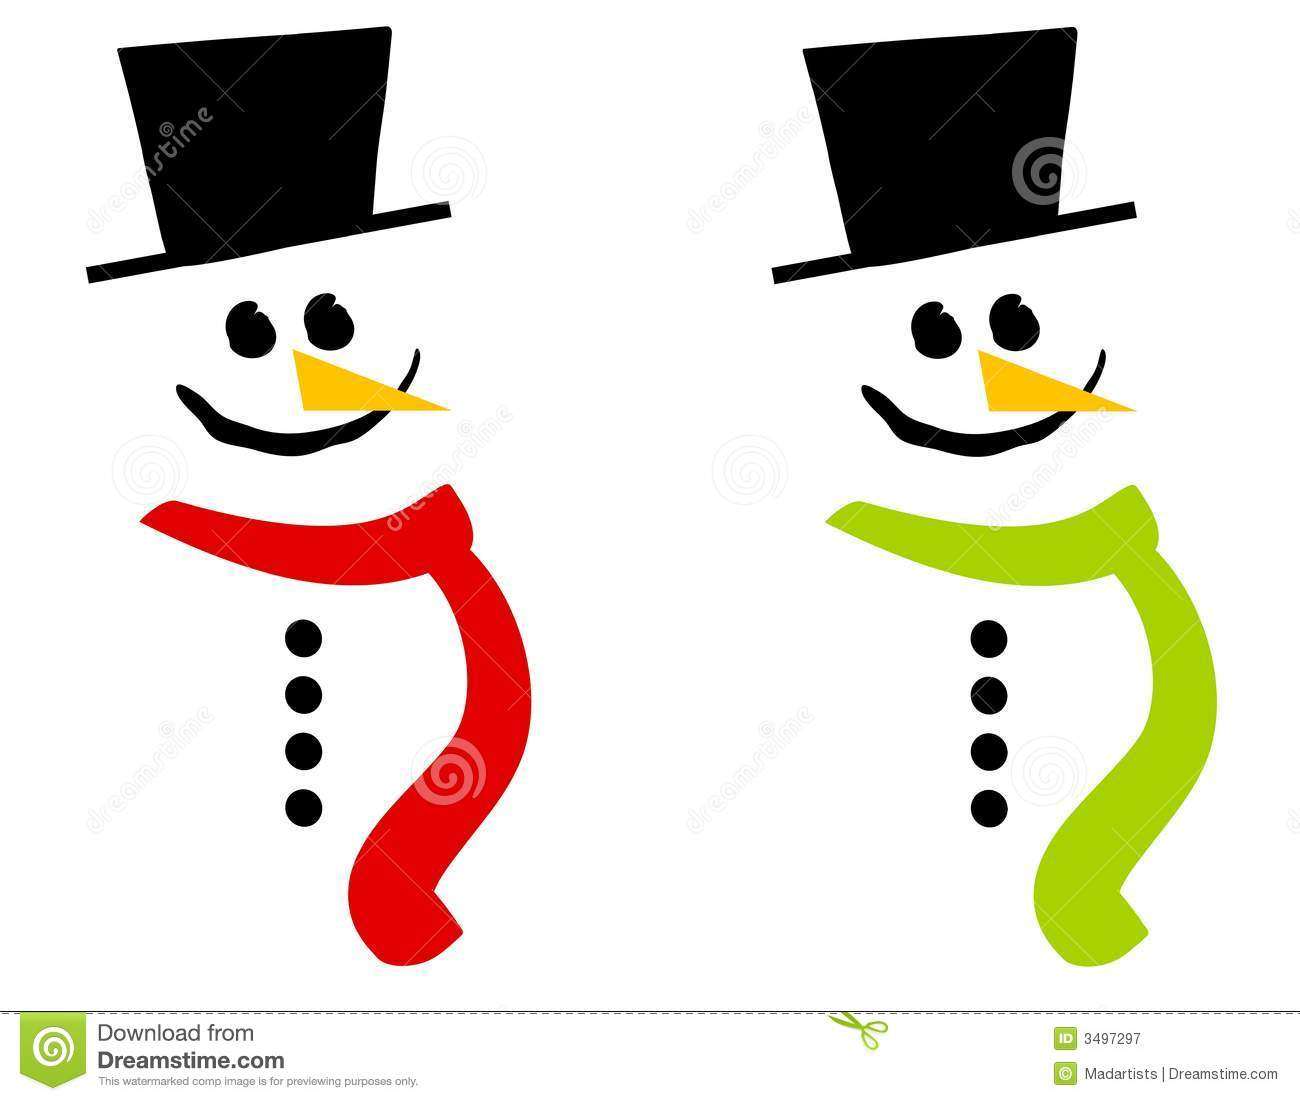 Search for similar clipart jpg freeuse stock Snowman Clip Art Isolated Royalty Free Stock Photo - Image: 7049645 jpg freeuse stock